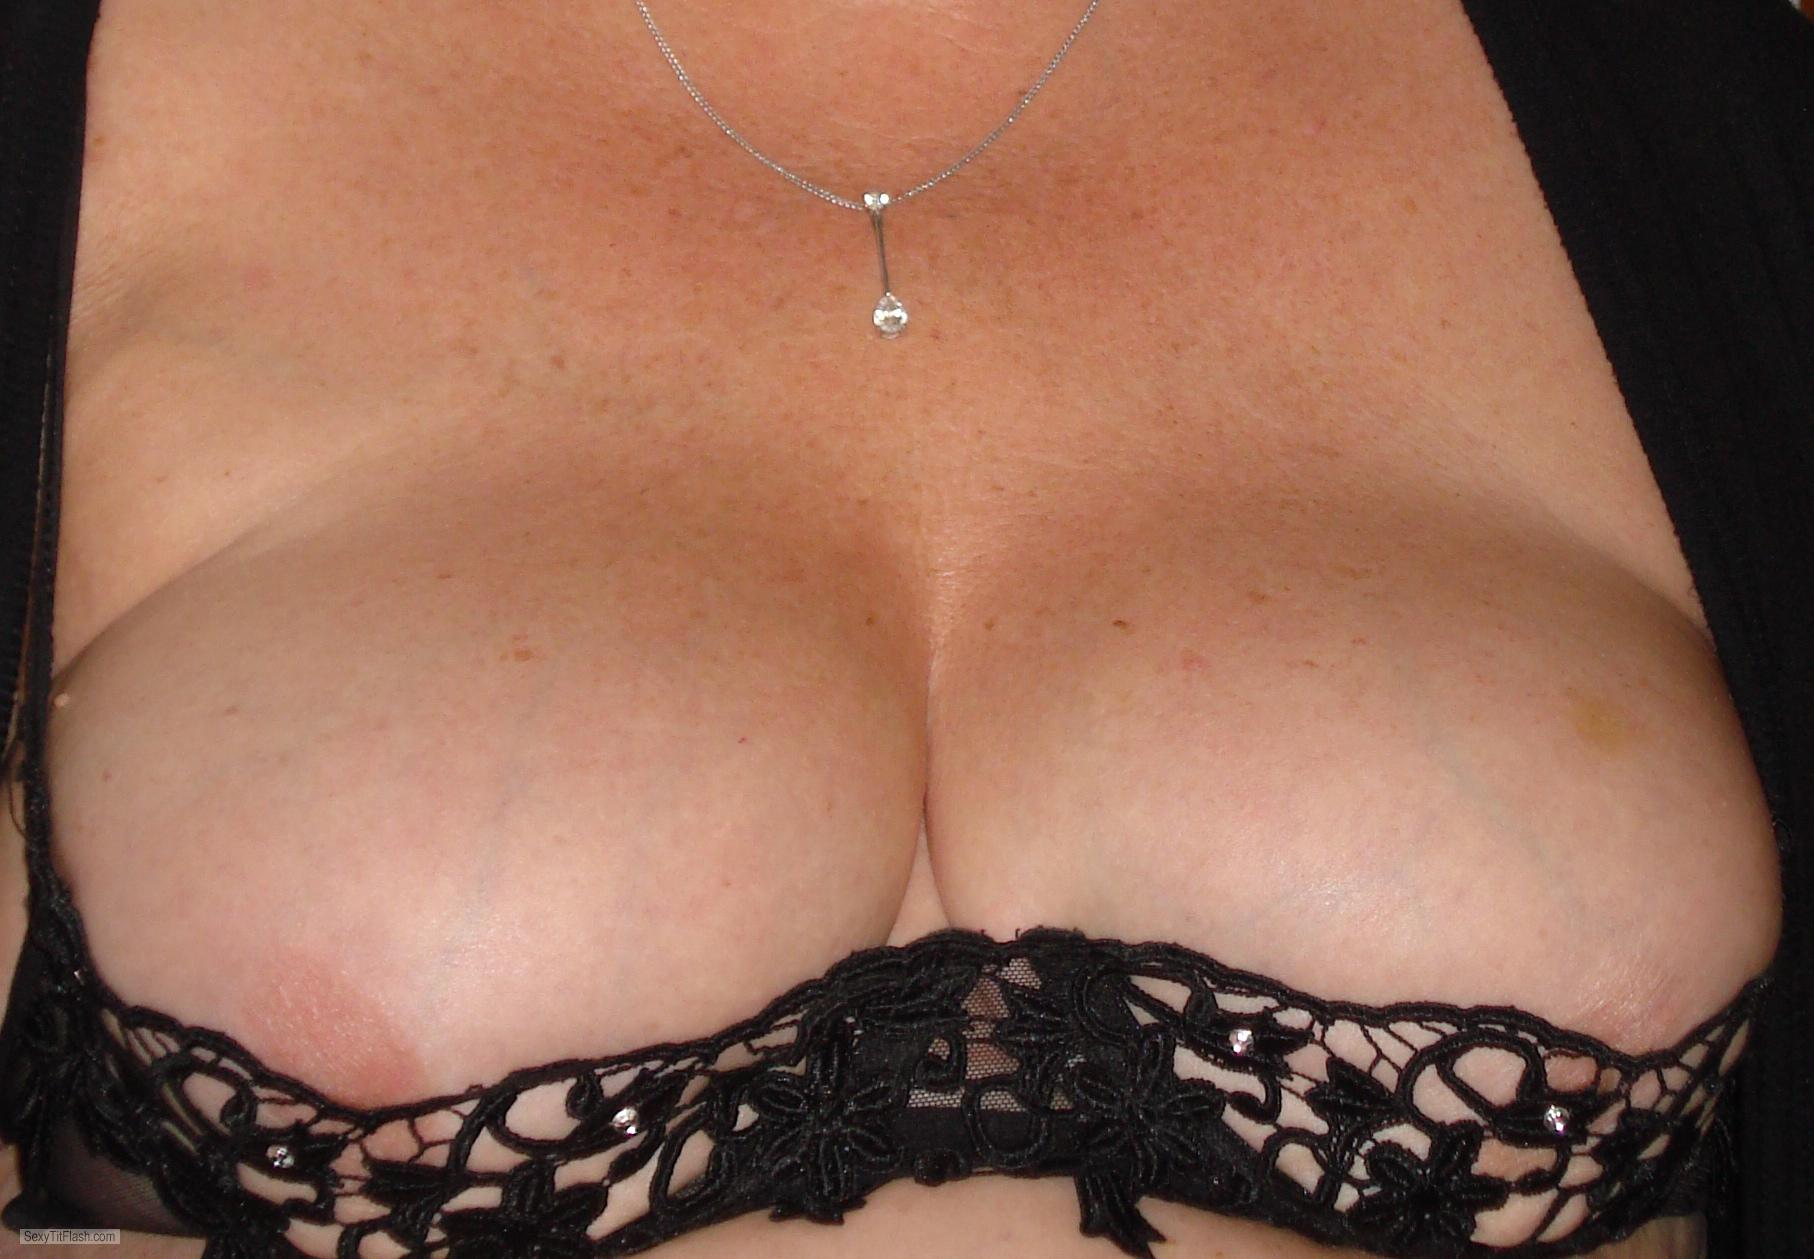 Tit Flash: My Friend's Big Tits - Sexy M from United States